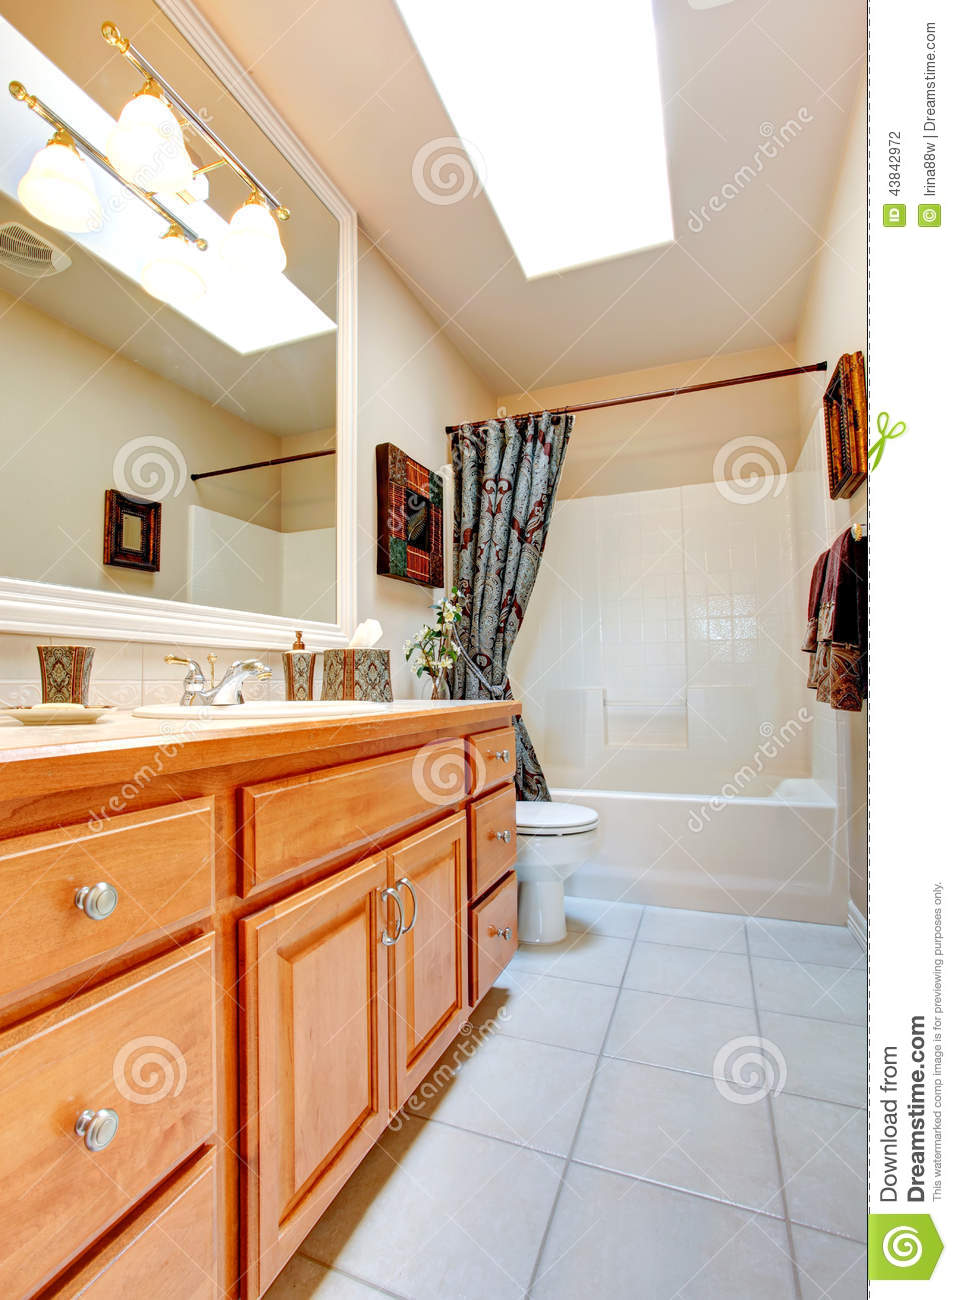 Bathroom Interior In New American House Stock Photo